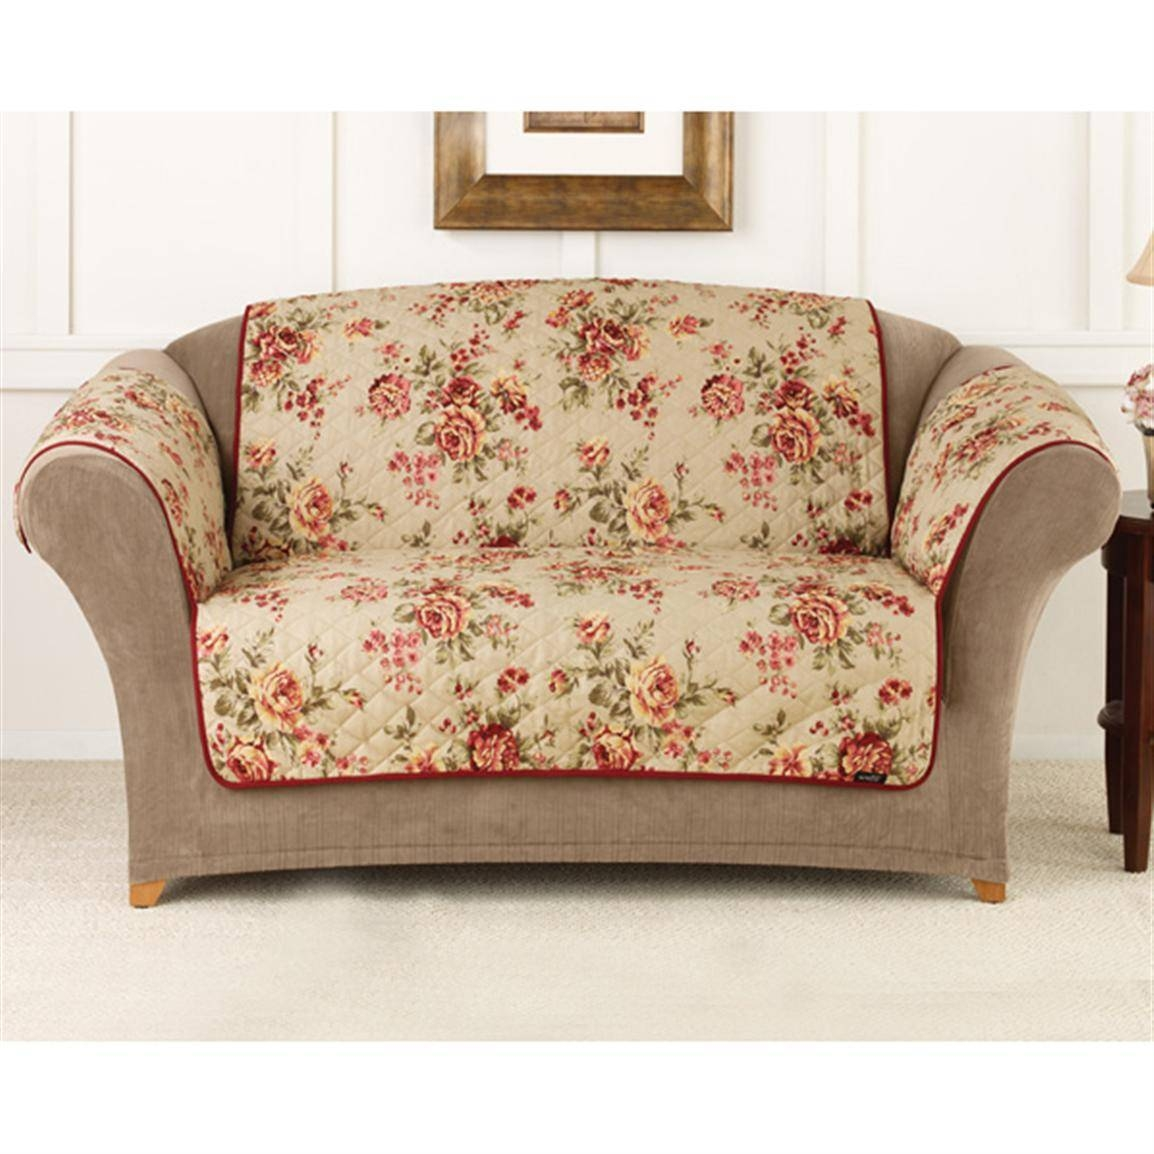 Floral Sofas In Style - Home Design Ideas And Pictures pertaining to Floral Sofas and Chairs (Image 6 of 15)